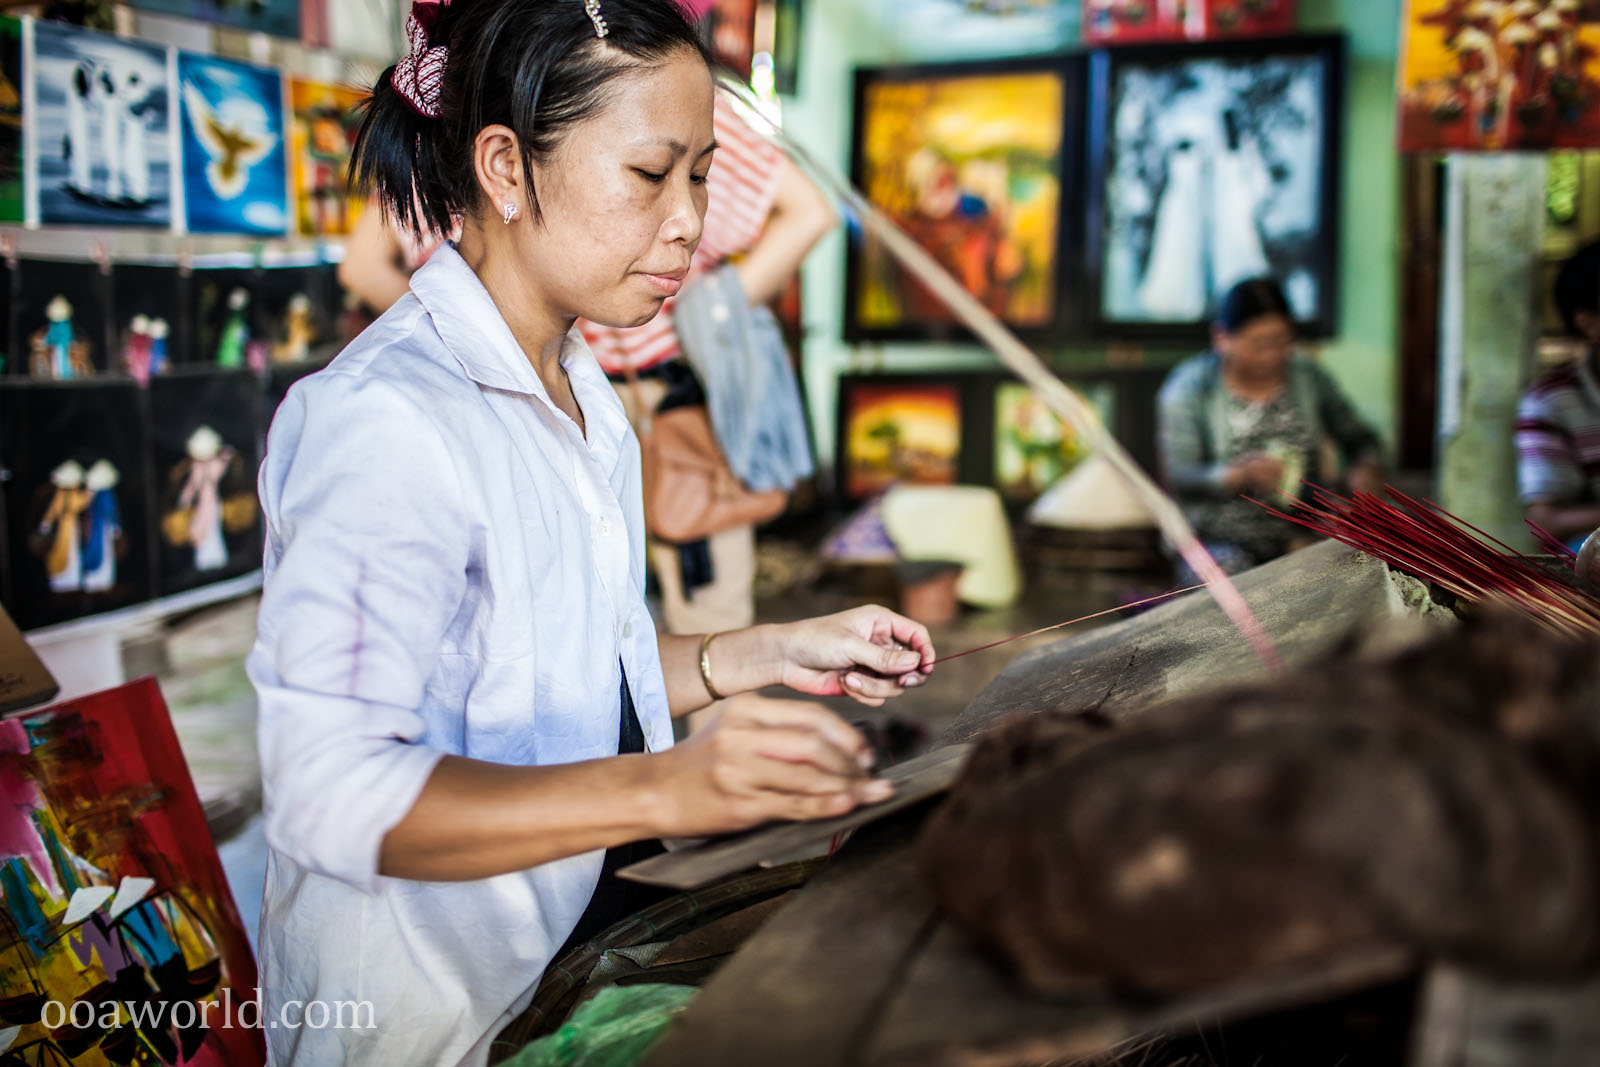 Making Incense Vietnam Photo Ooaworld